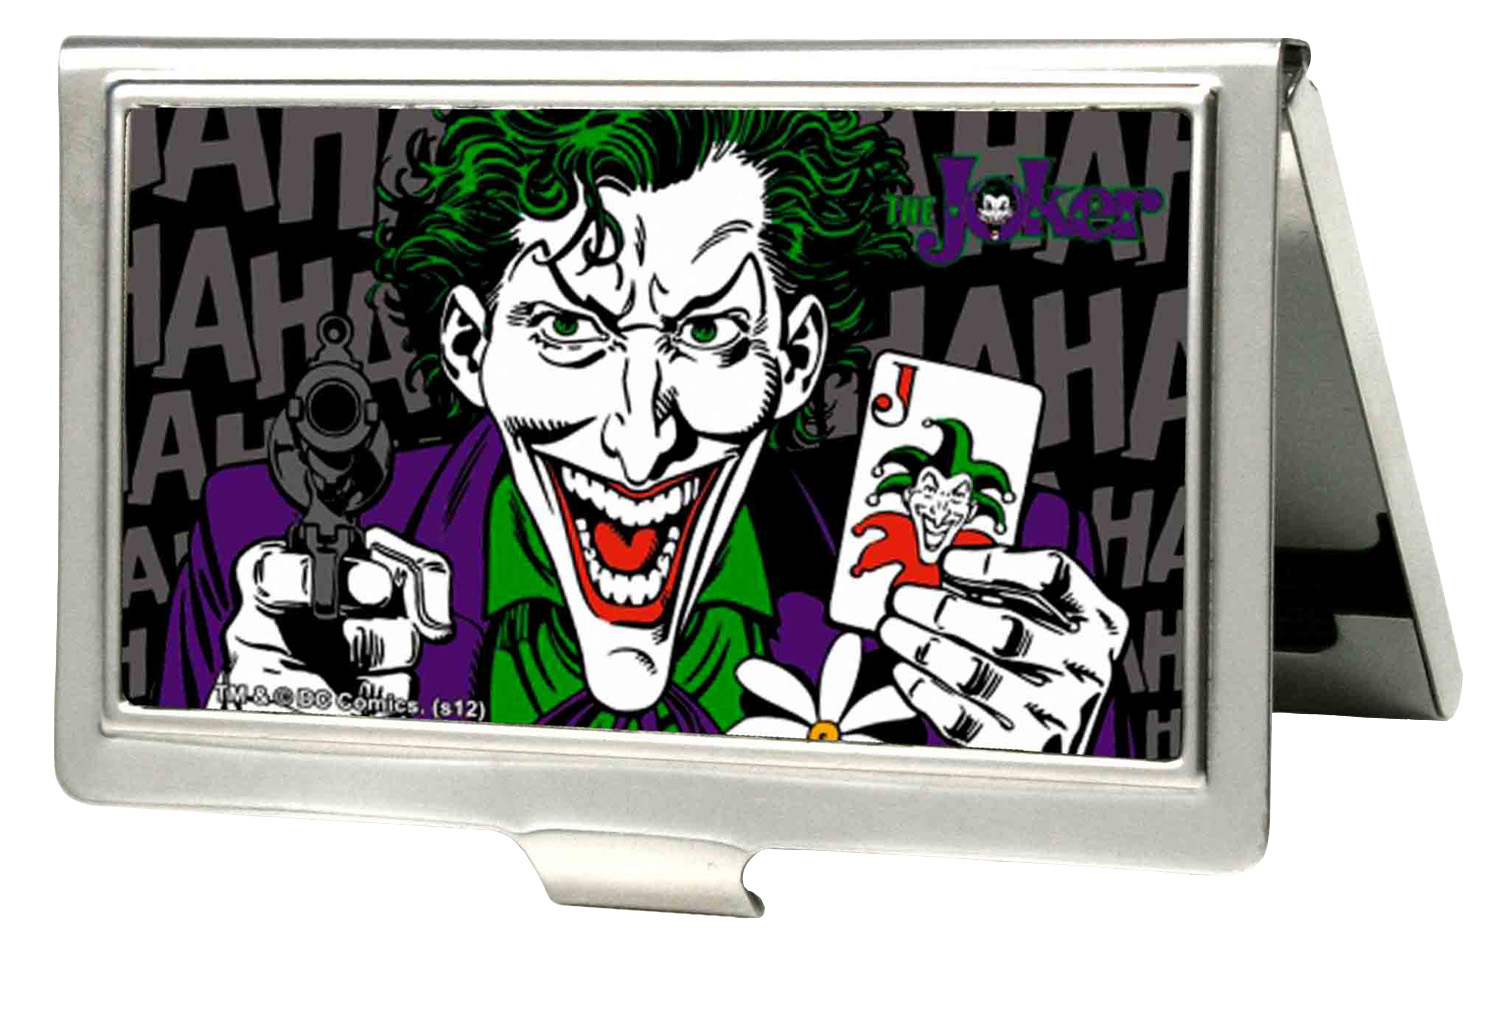 Joker DC Comics Supervillain His Card Large Business Card Holder | eBay